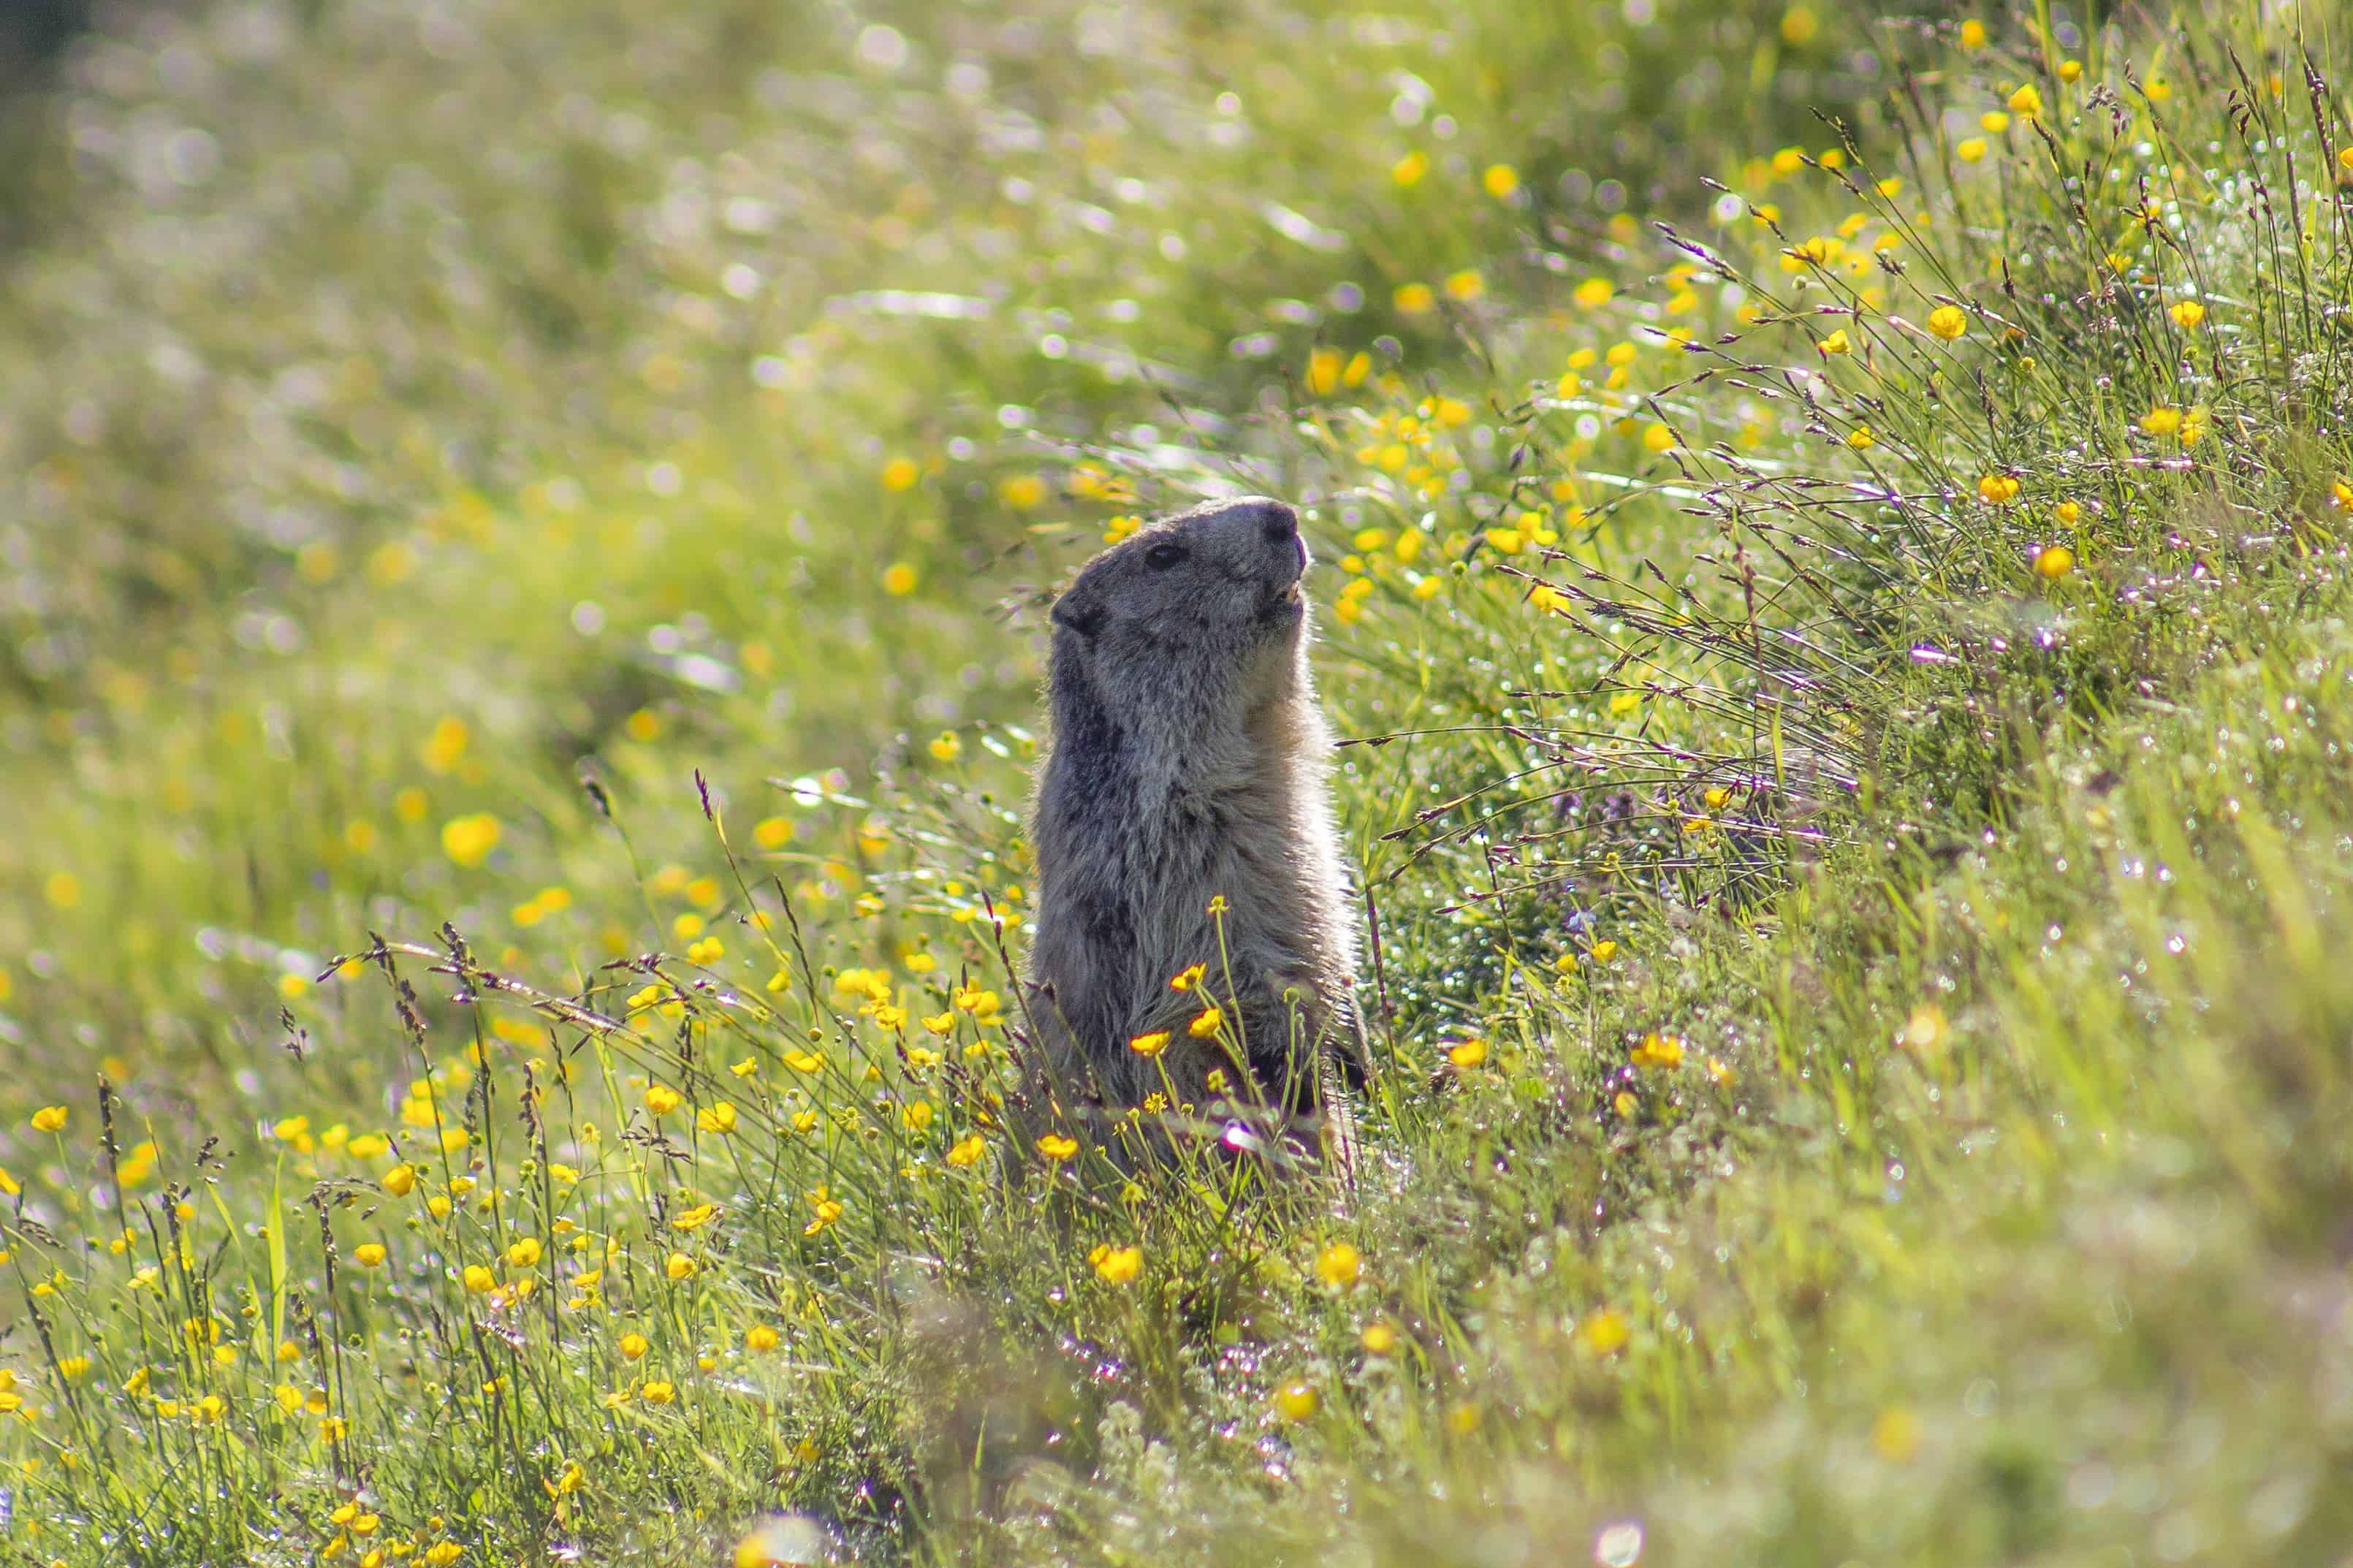 Free picture: wildlife, nature, wild, grass, rodent, flower, outdoor